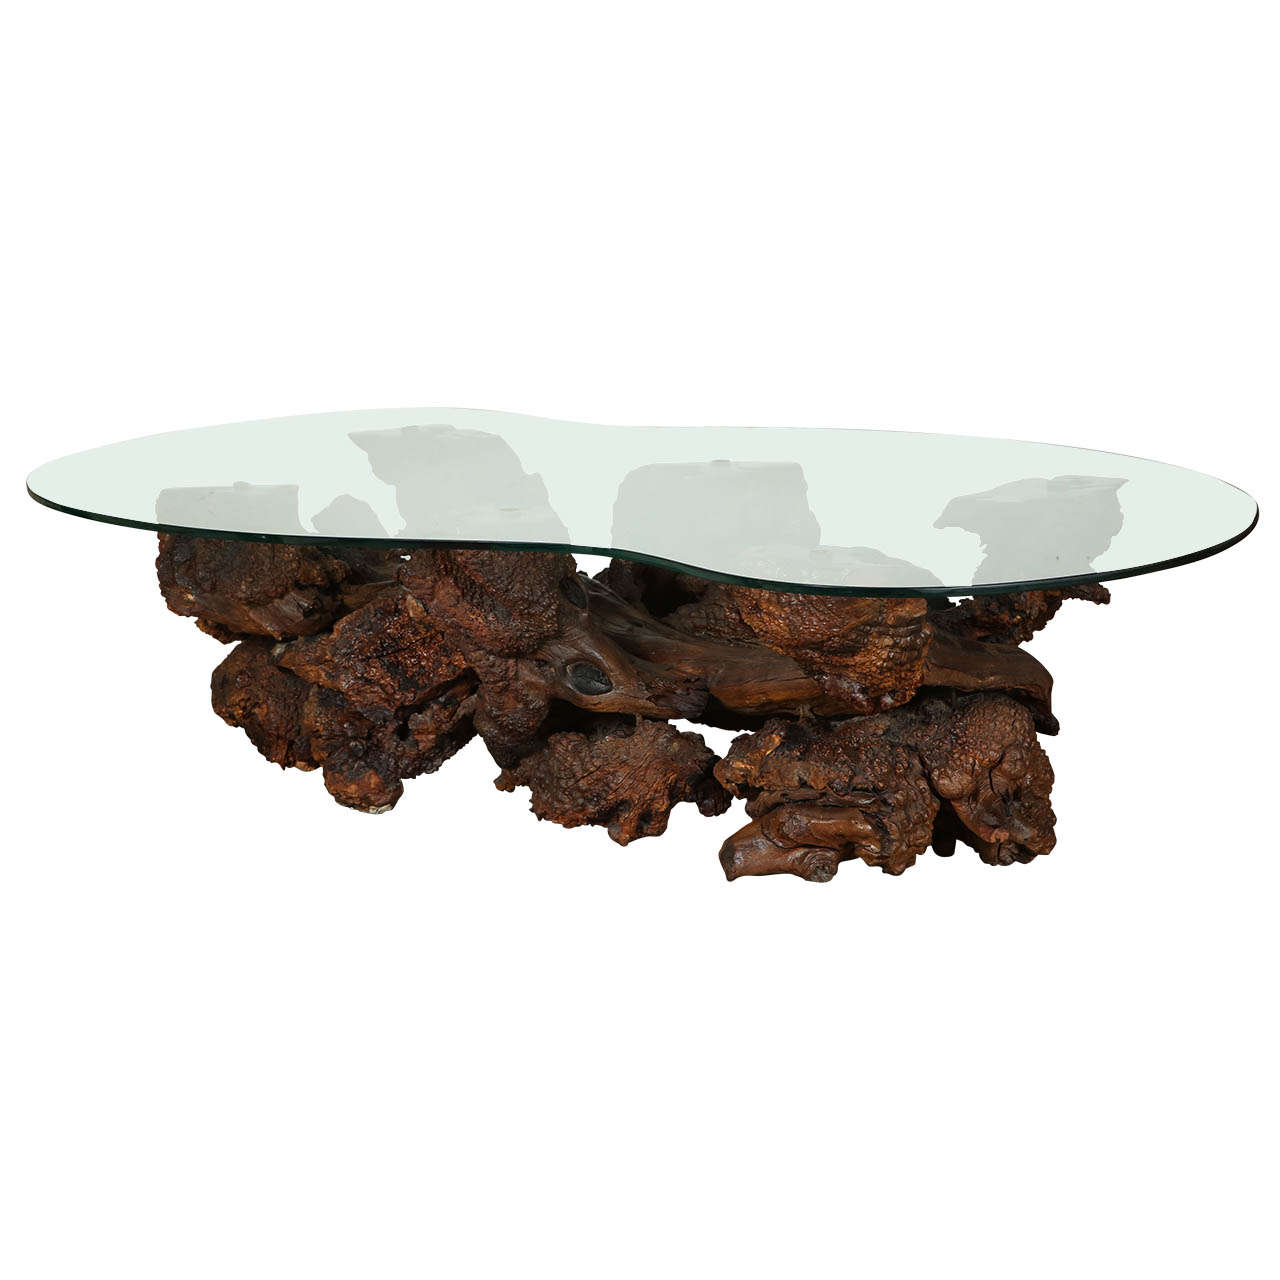 Spectacular Sculptural Large Burl Driftwood Coffee Table At 1stdibs